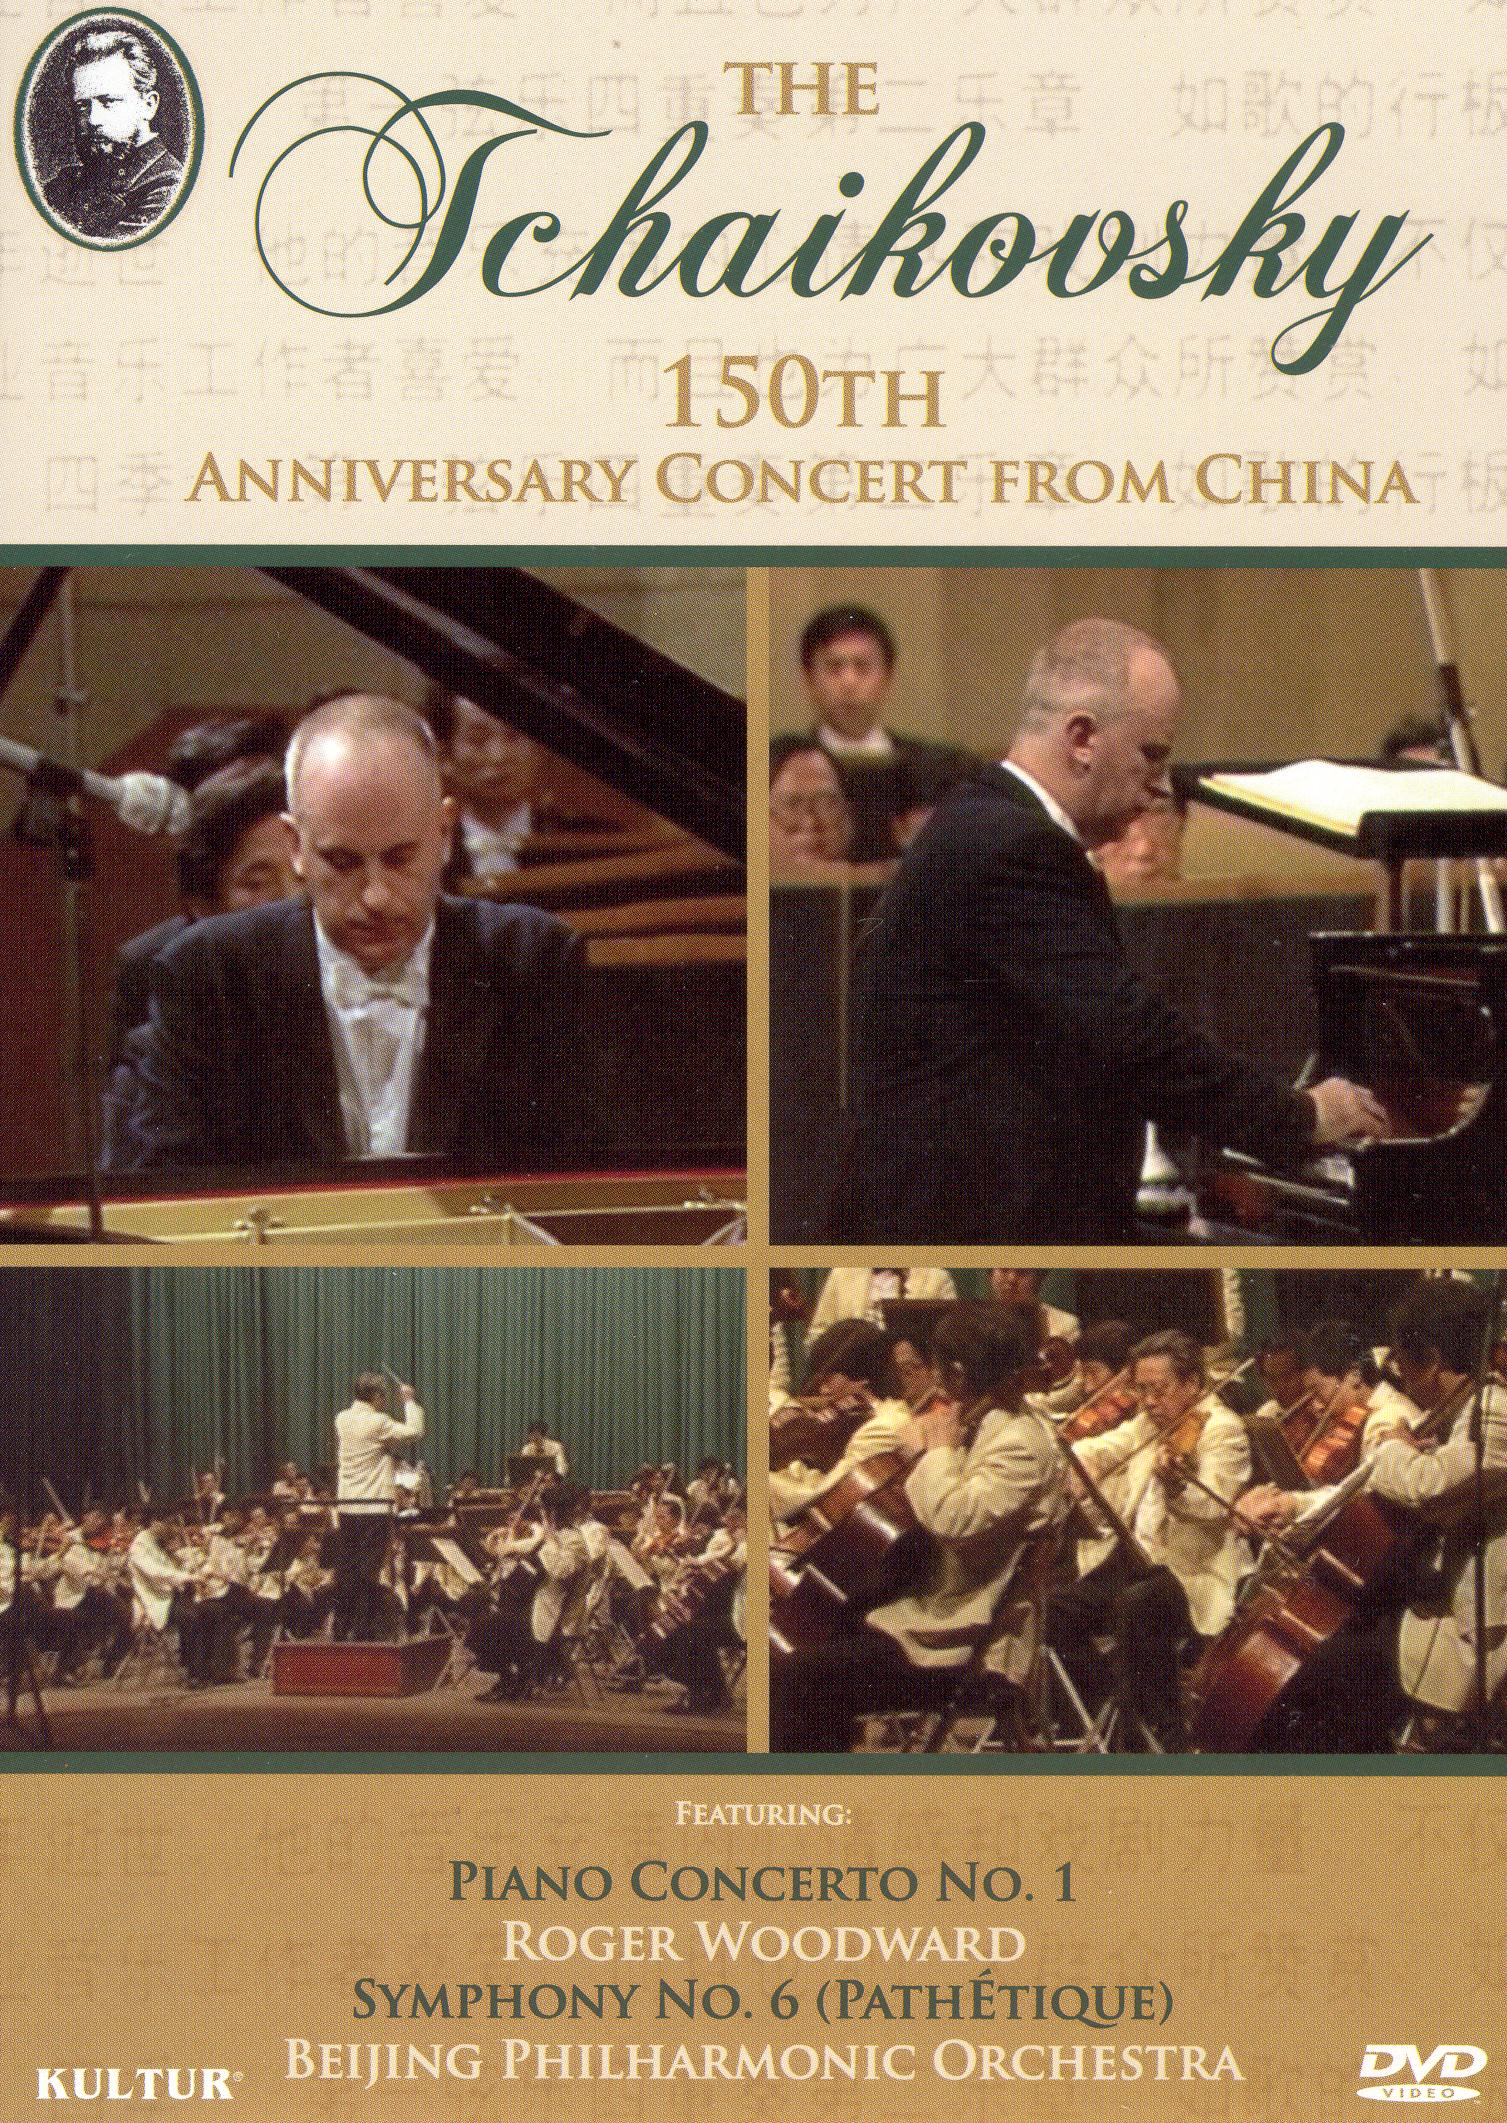 Tchaikovsky's 150th Anniversary Concert in China